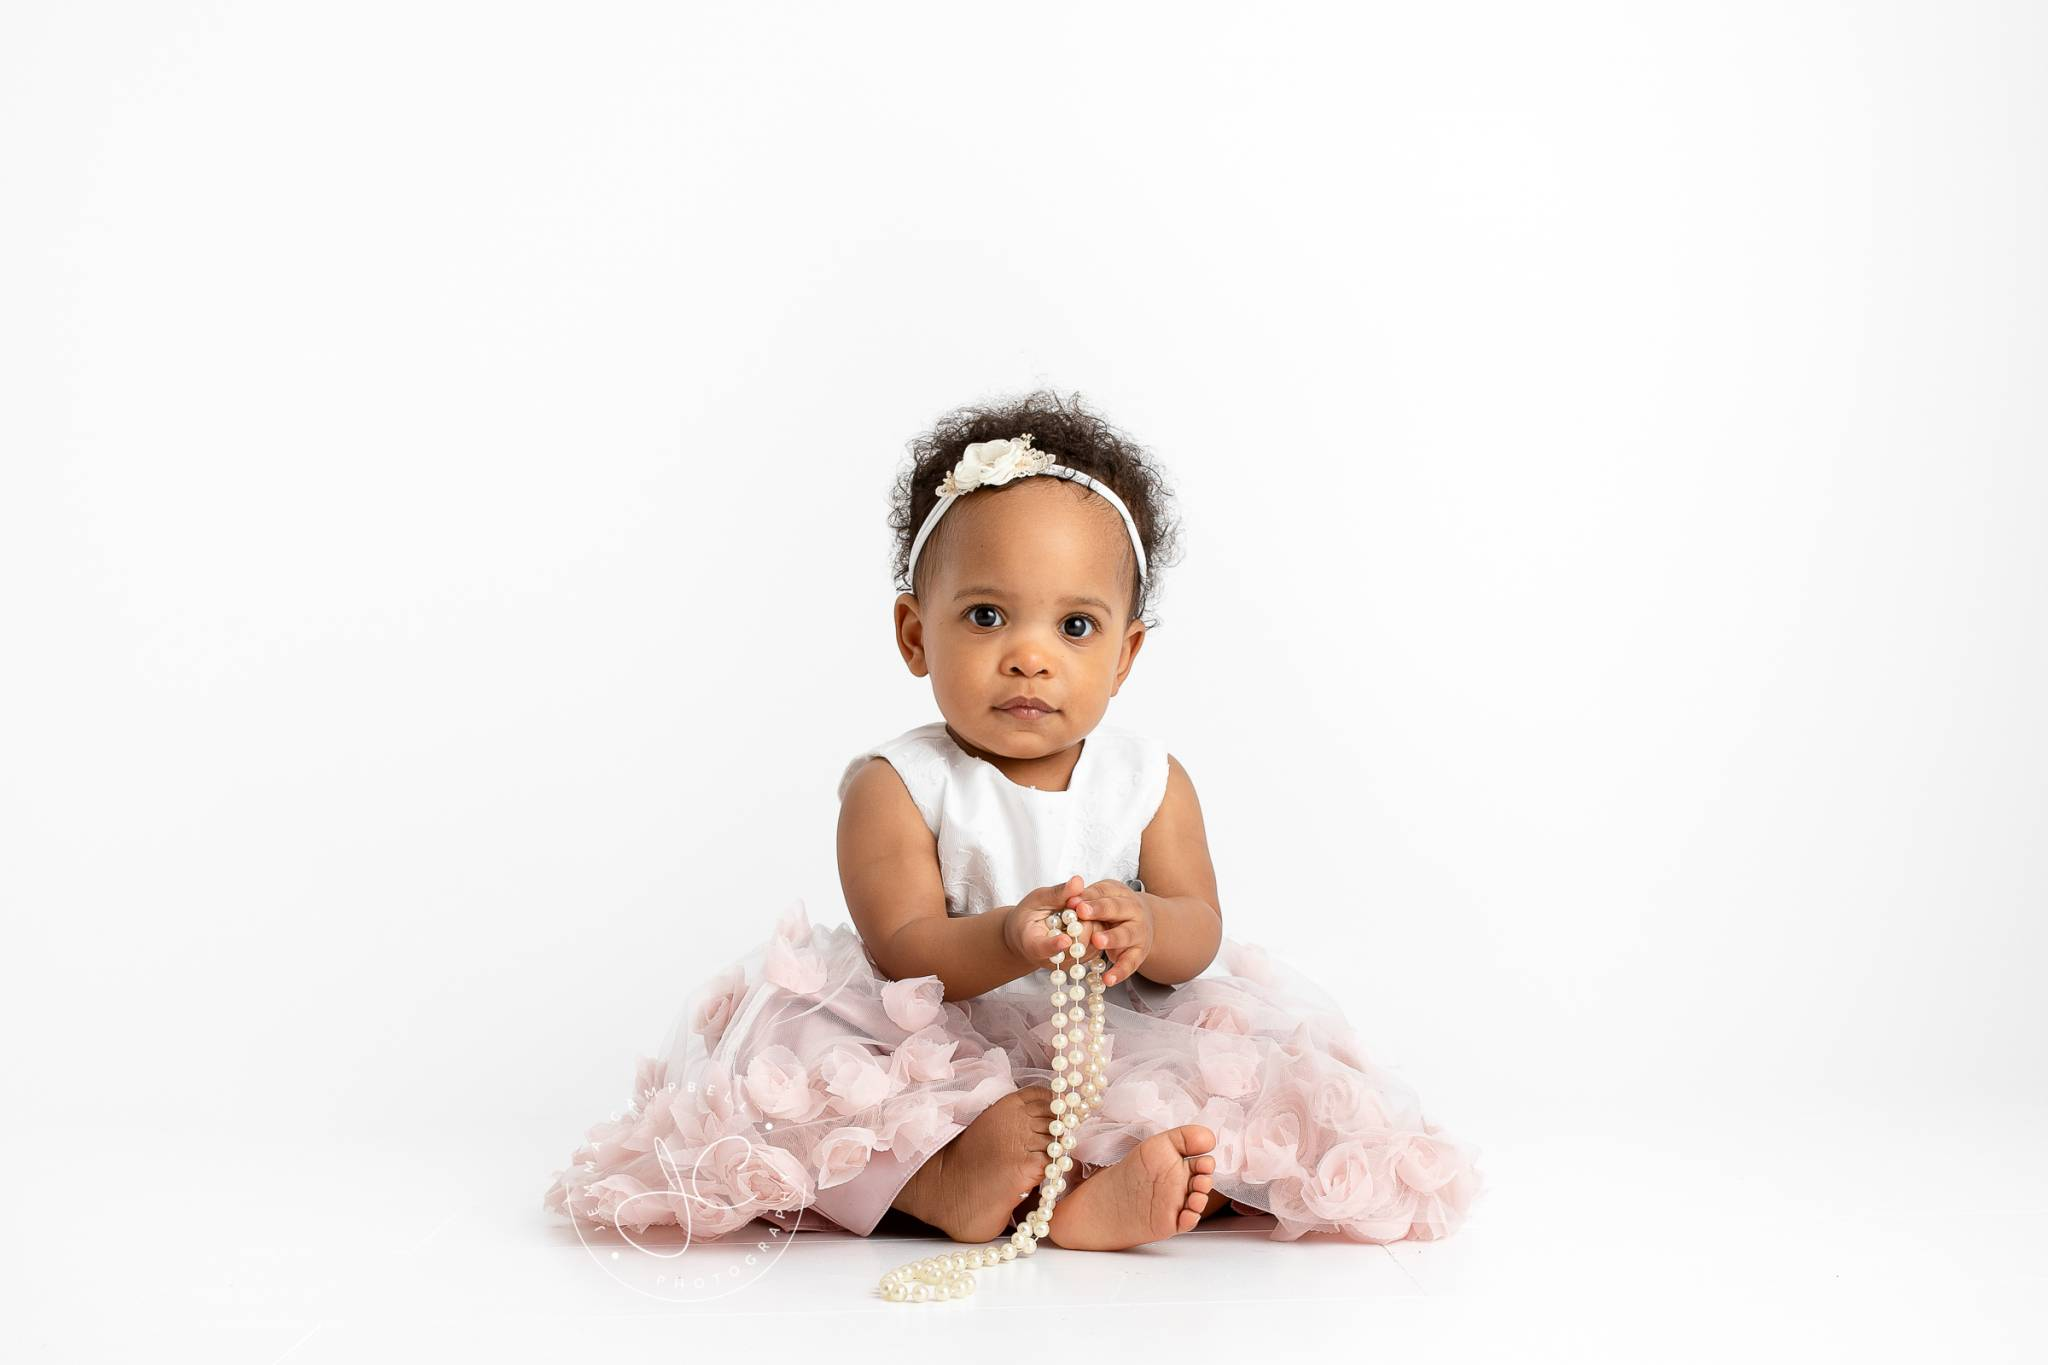 baby photography, baby photoshoot, toddler photoshoot, toddler photography, Family Photoshoot, family photographer, family photography, children photoshoot, baby photography, baby photoshoot,studio photography, studio photoshoot, high wycombe, Buckinghamshire